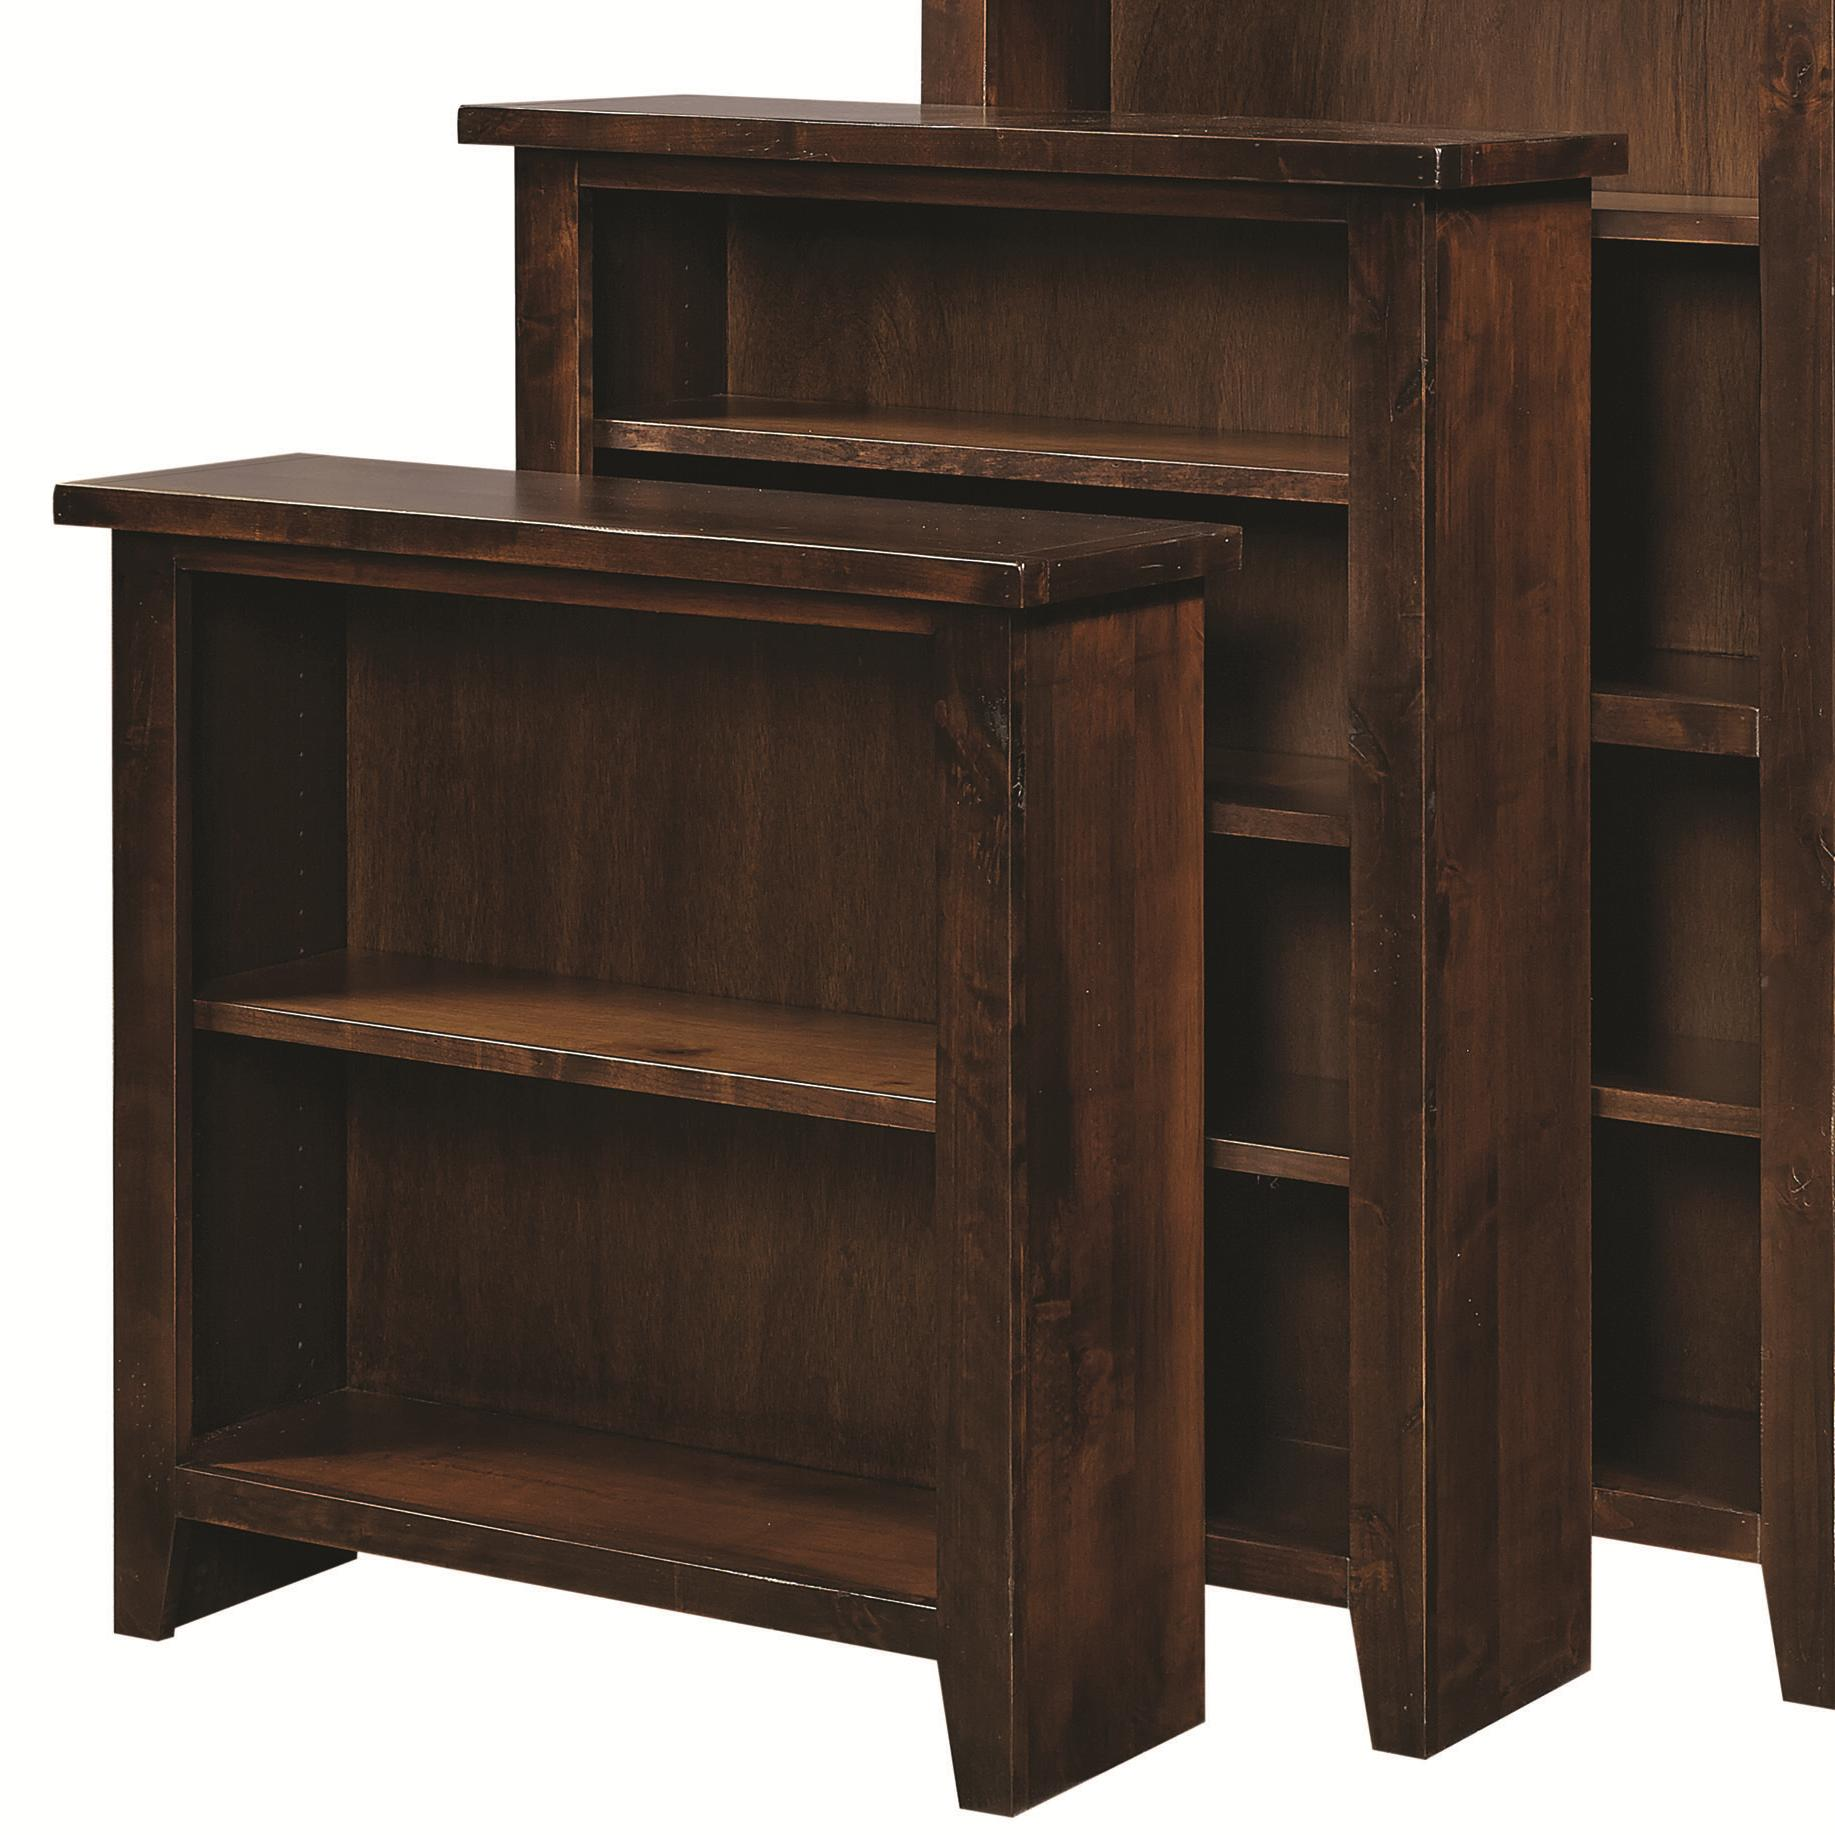 "Alder Grove Bookcase 48"" Height with 3 Shelves by Aspenhome at Baer's Furniture"